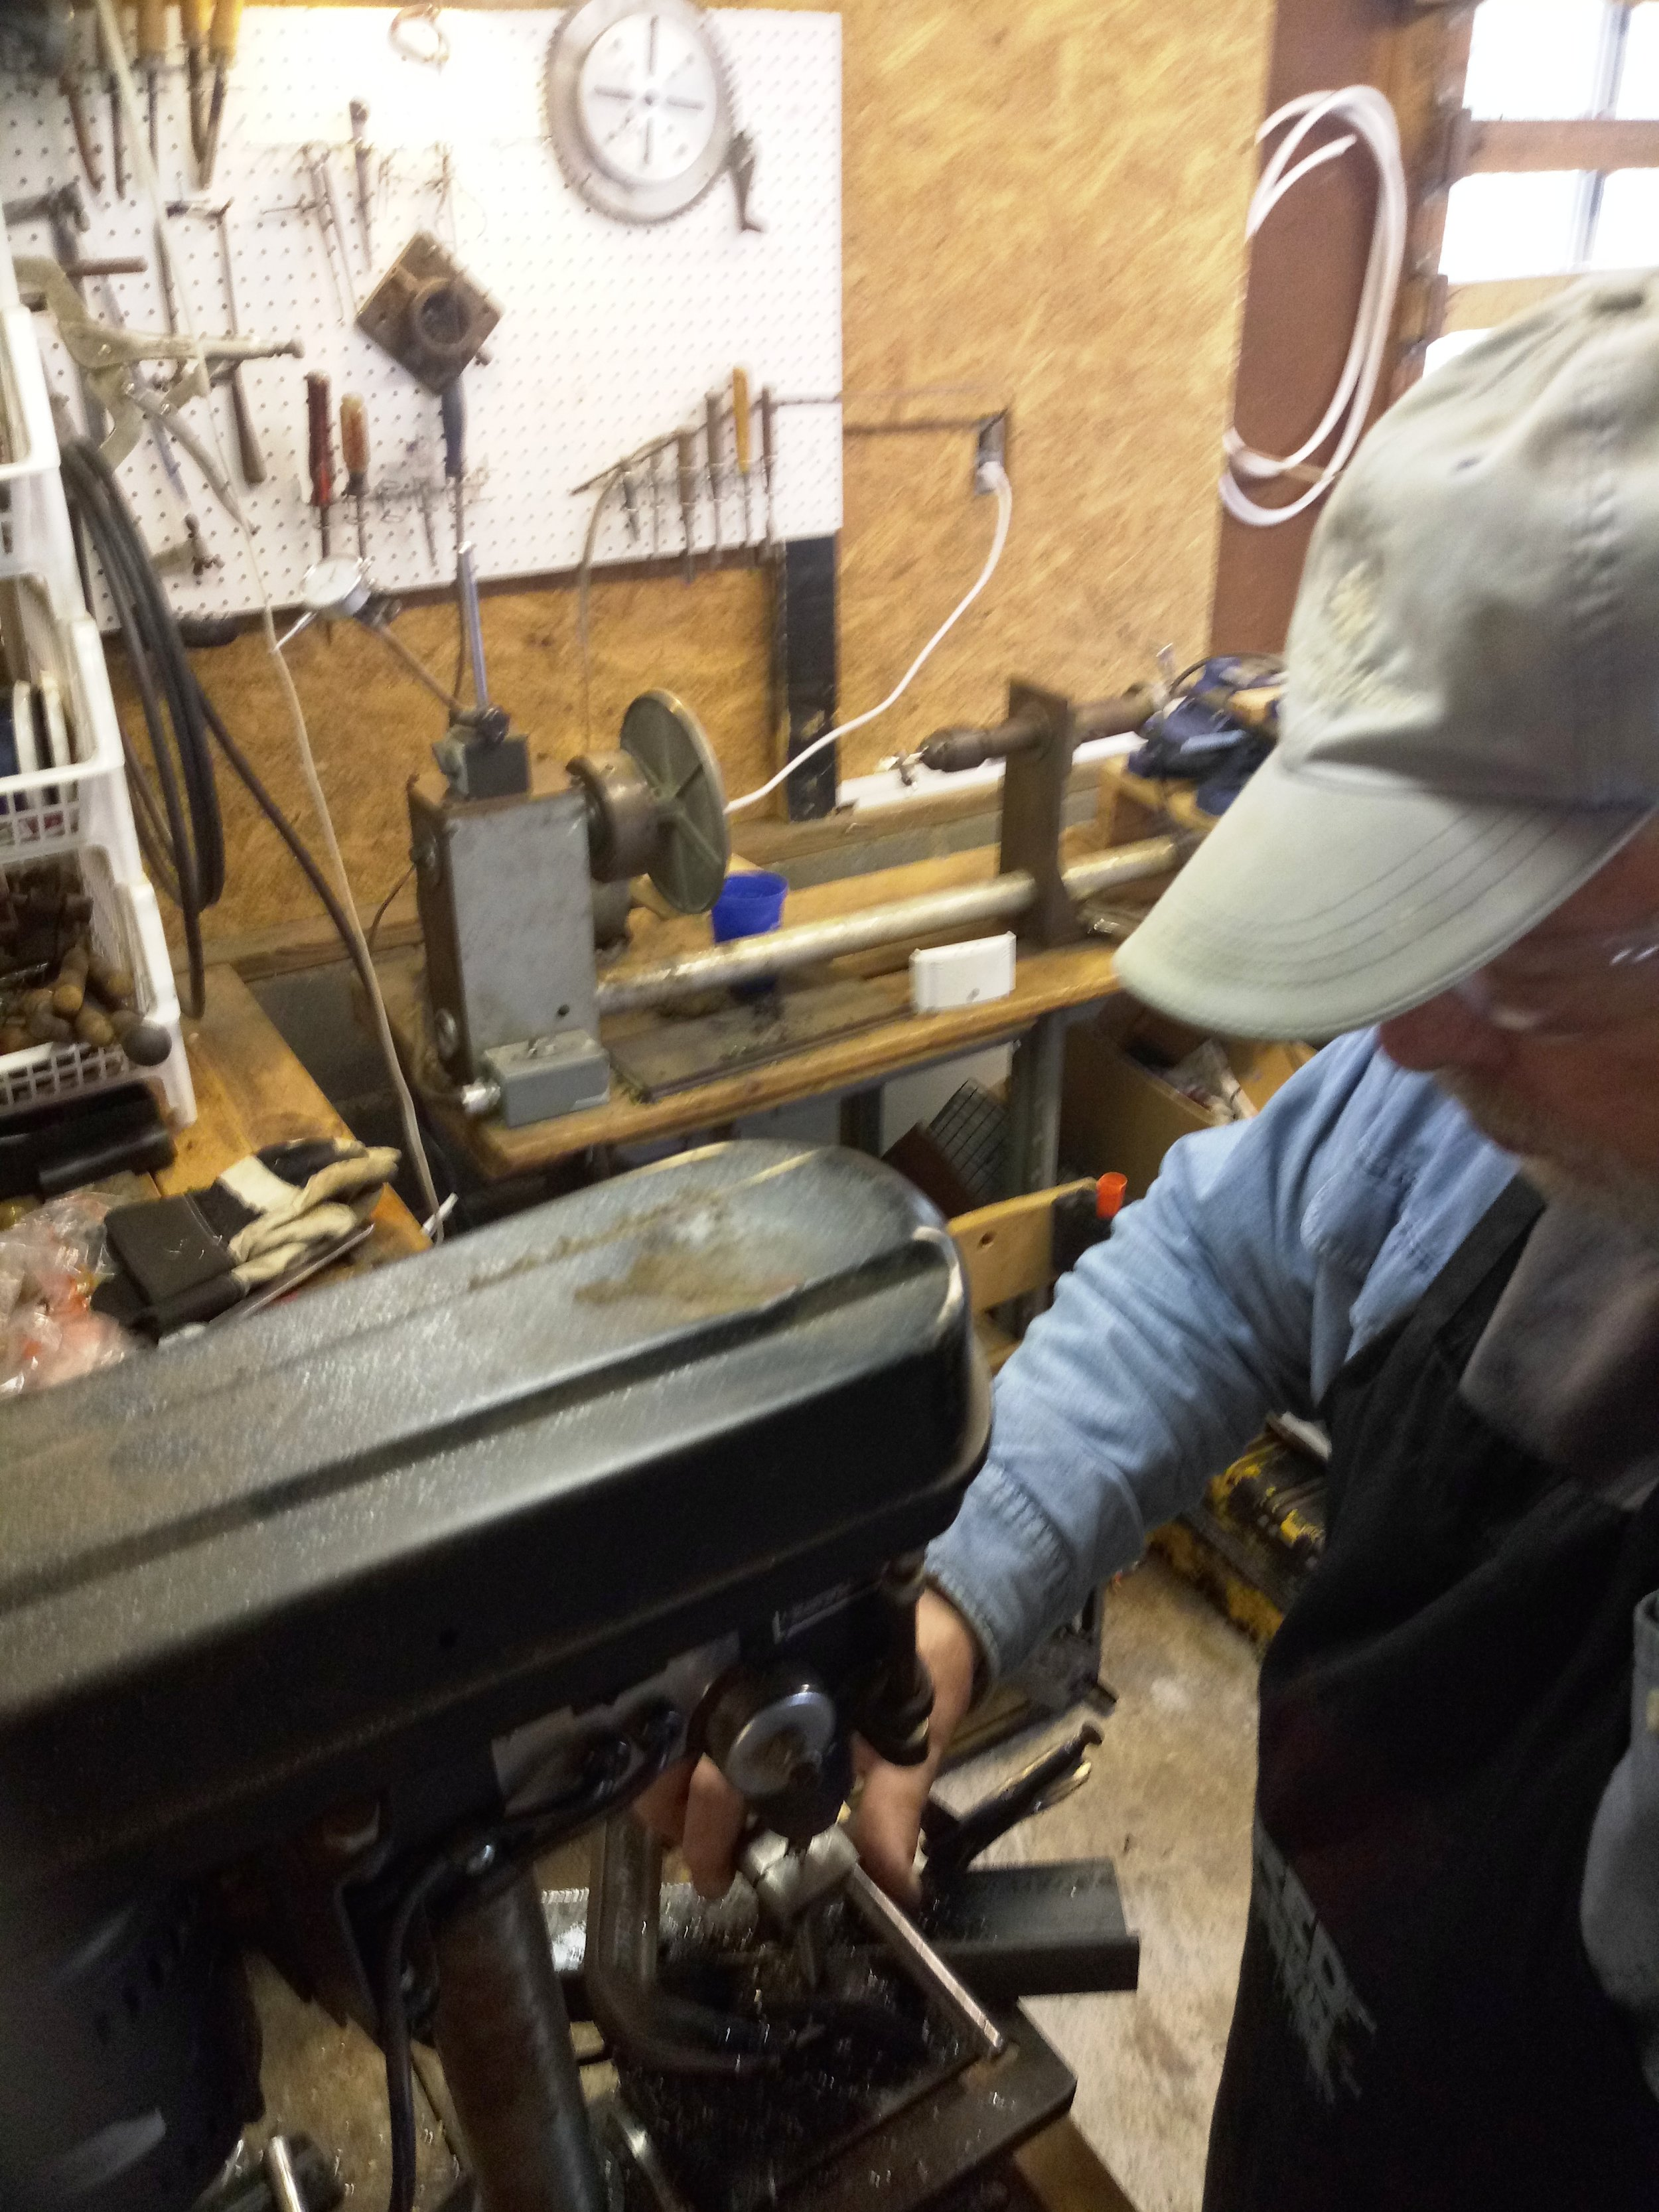 Working a tap on the drill press